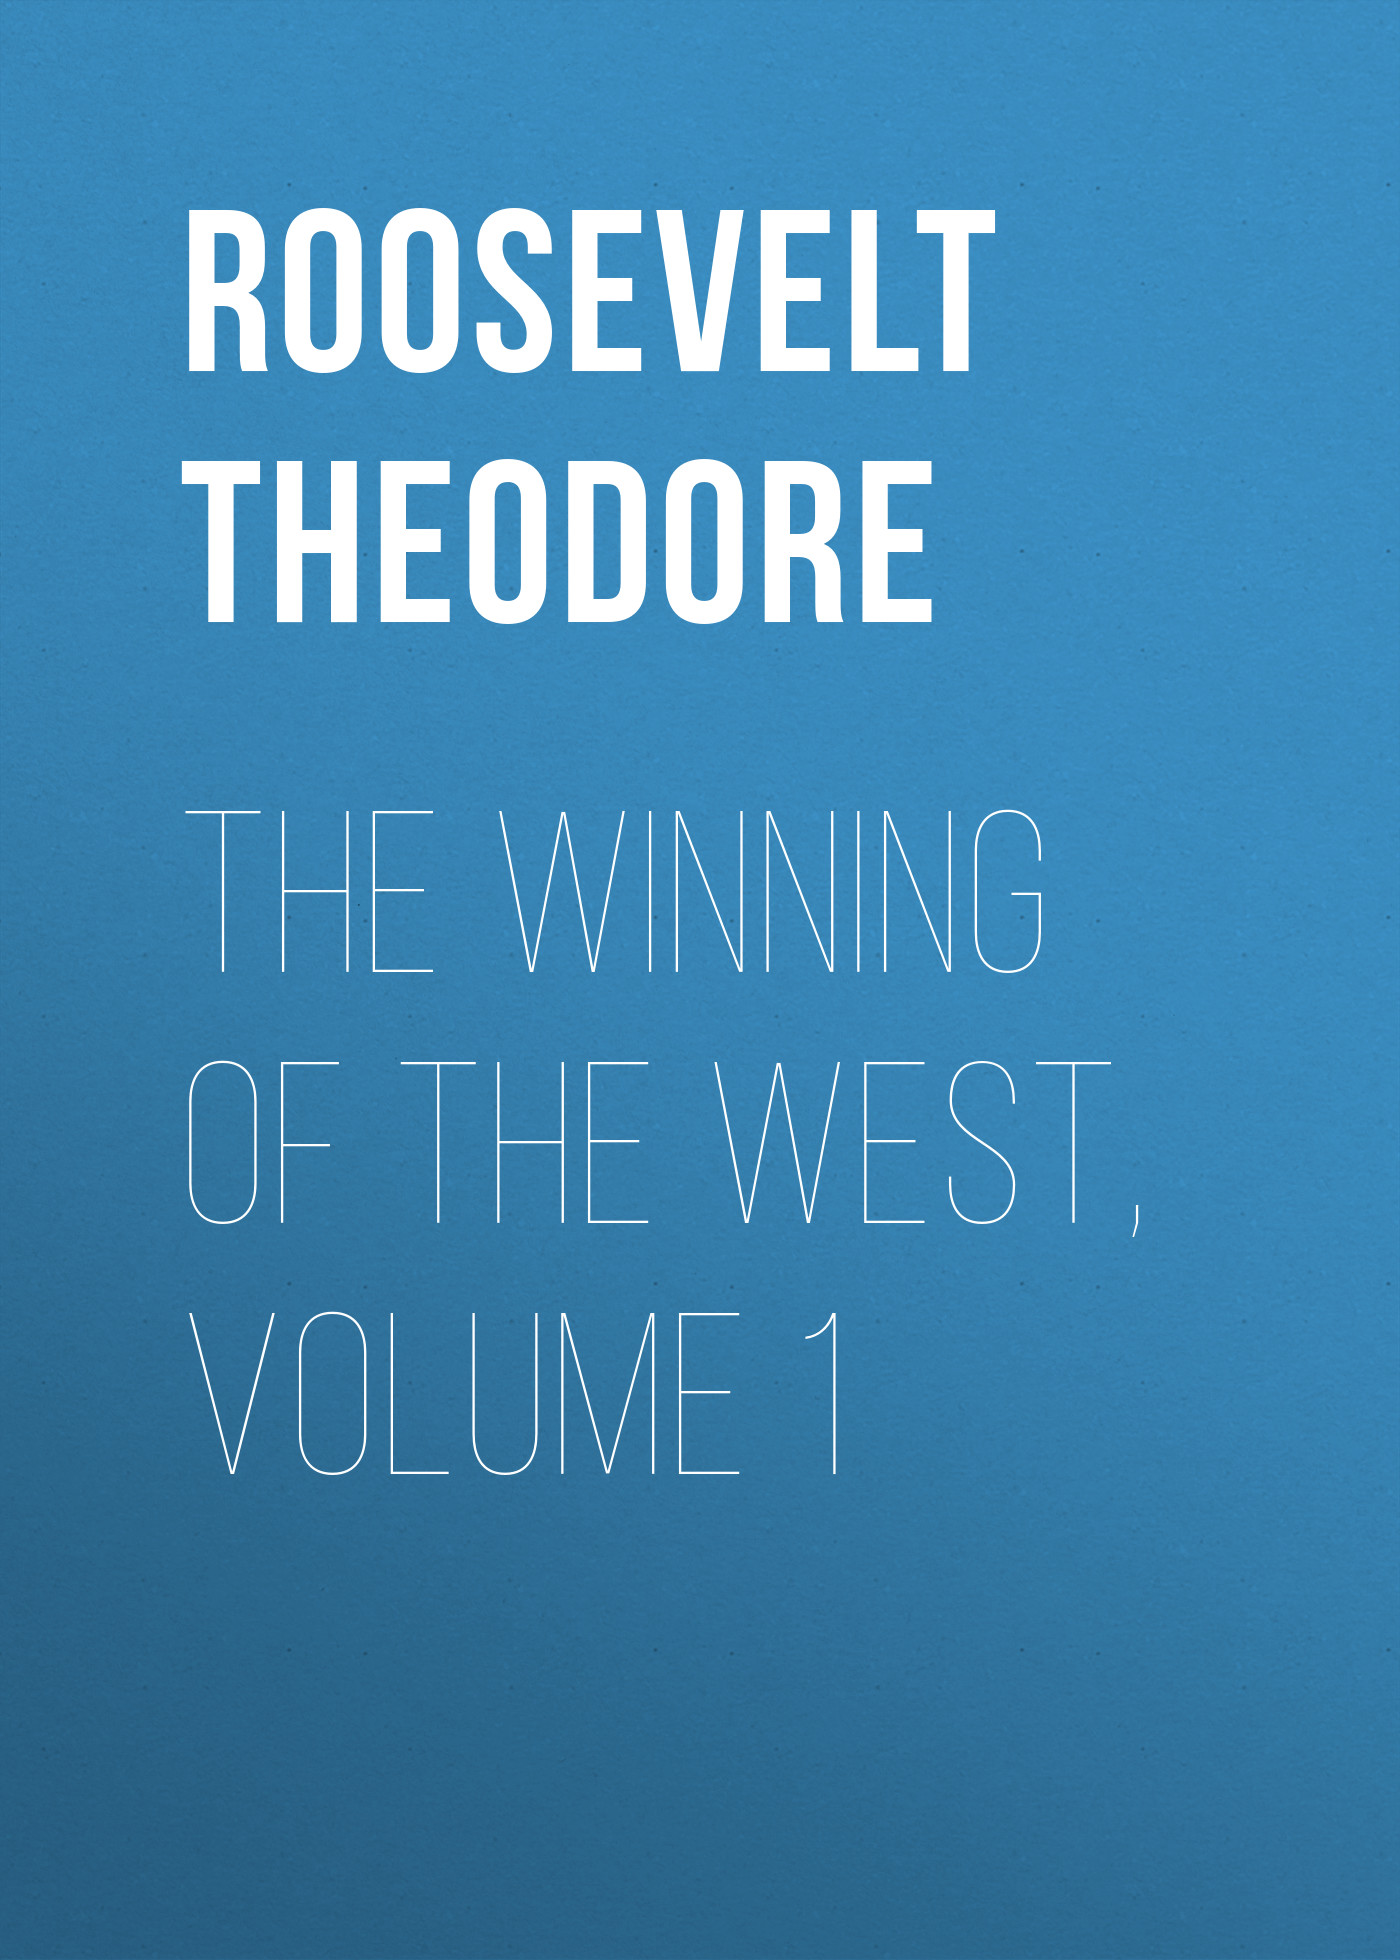 Roosevelt Theodore The Winning of the West, Volume 1 the guild volume 1